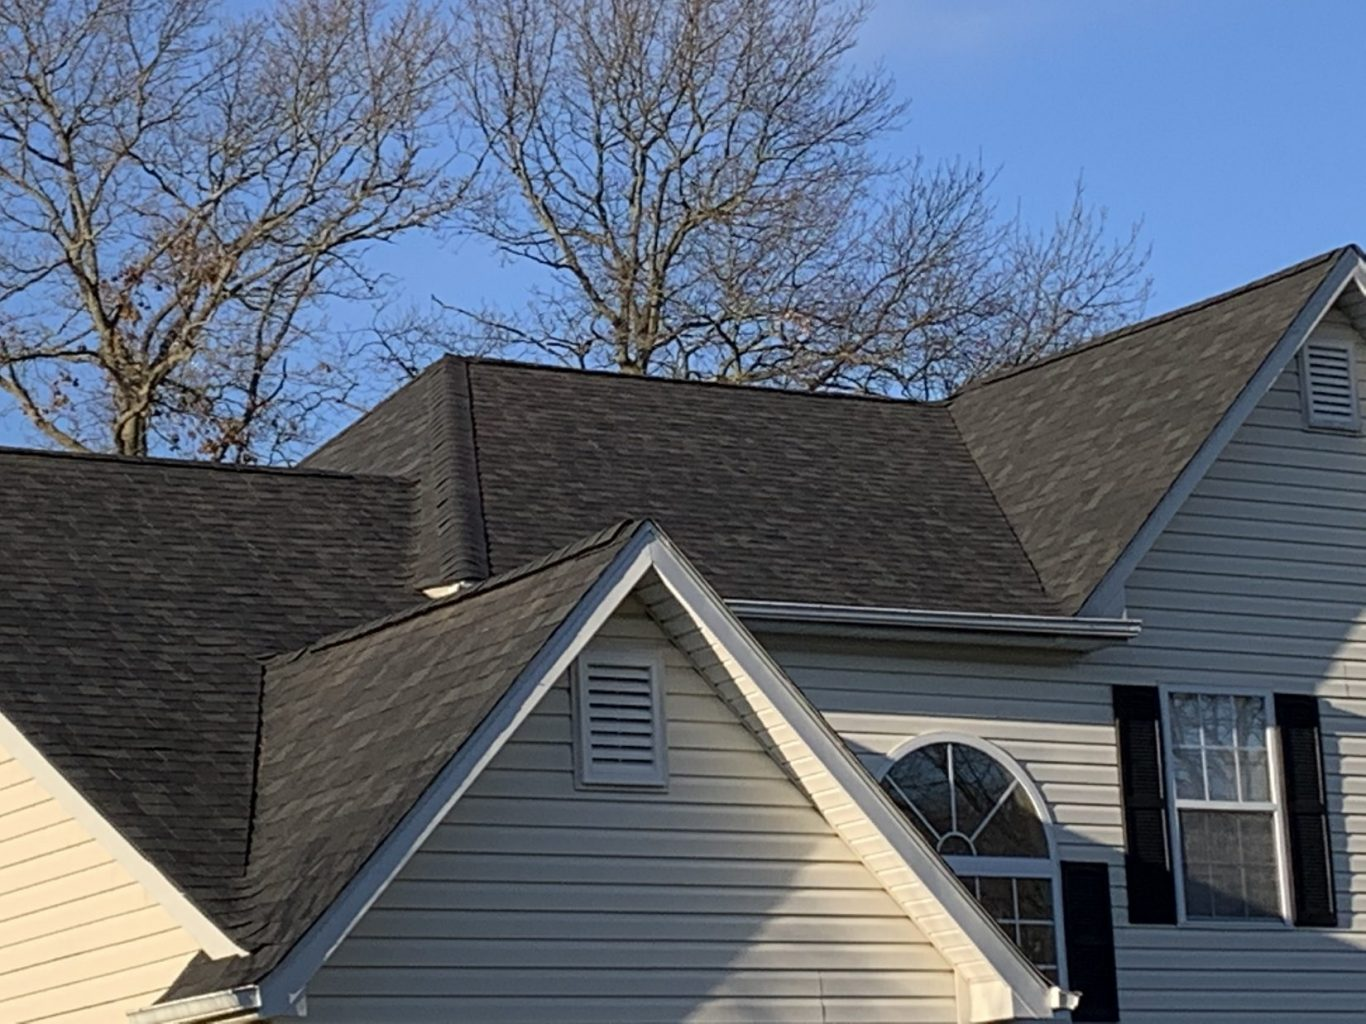 2,200 Sqft Roof in Toms River